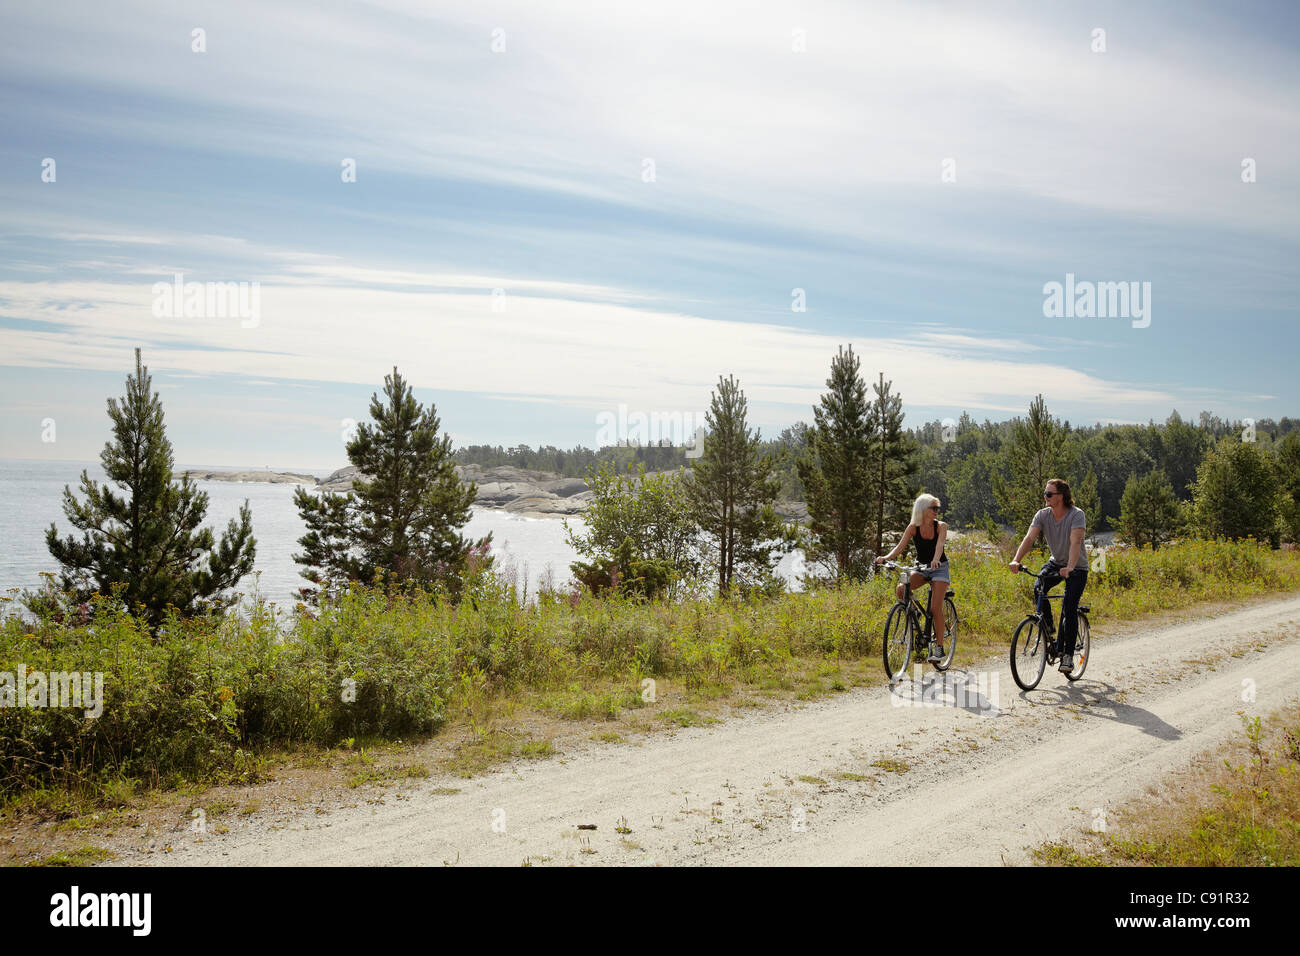 Couple bicycling on rural dirt path - Stock Image